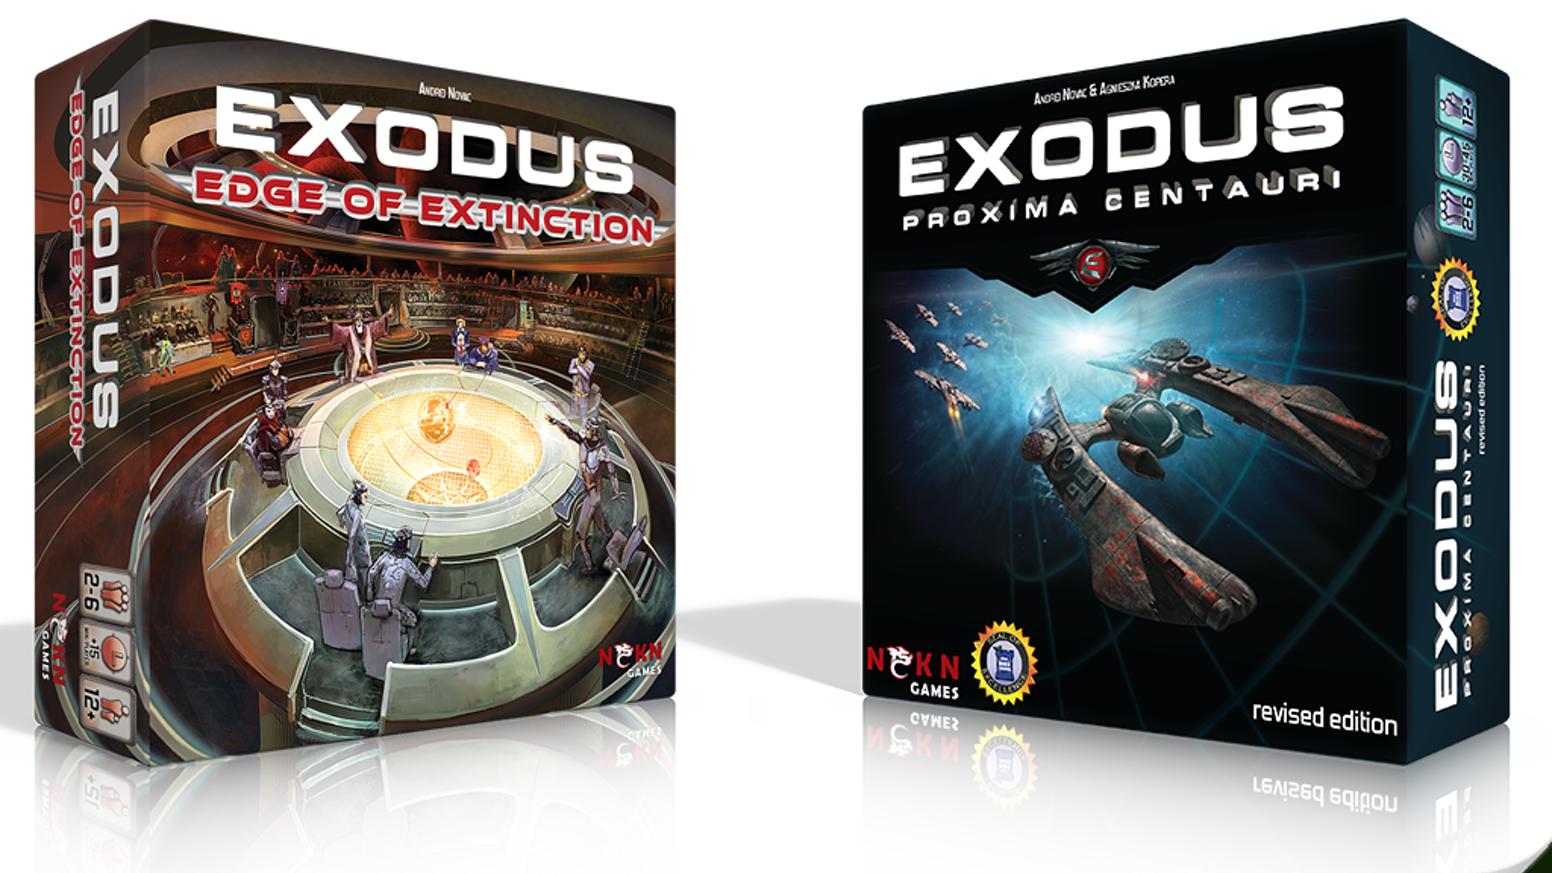 Exodus returns with an epic expansion. Research new technologies, expand your fleets and bring your enemies to the Edge of Extinction.